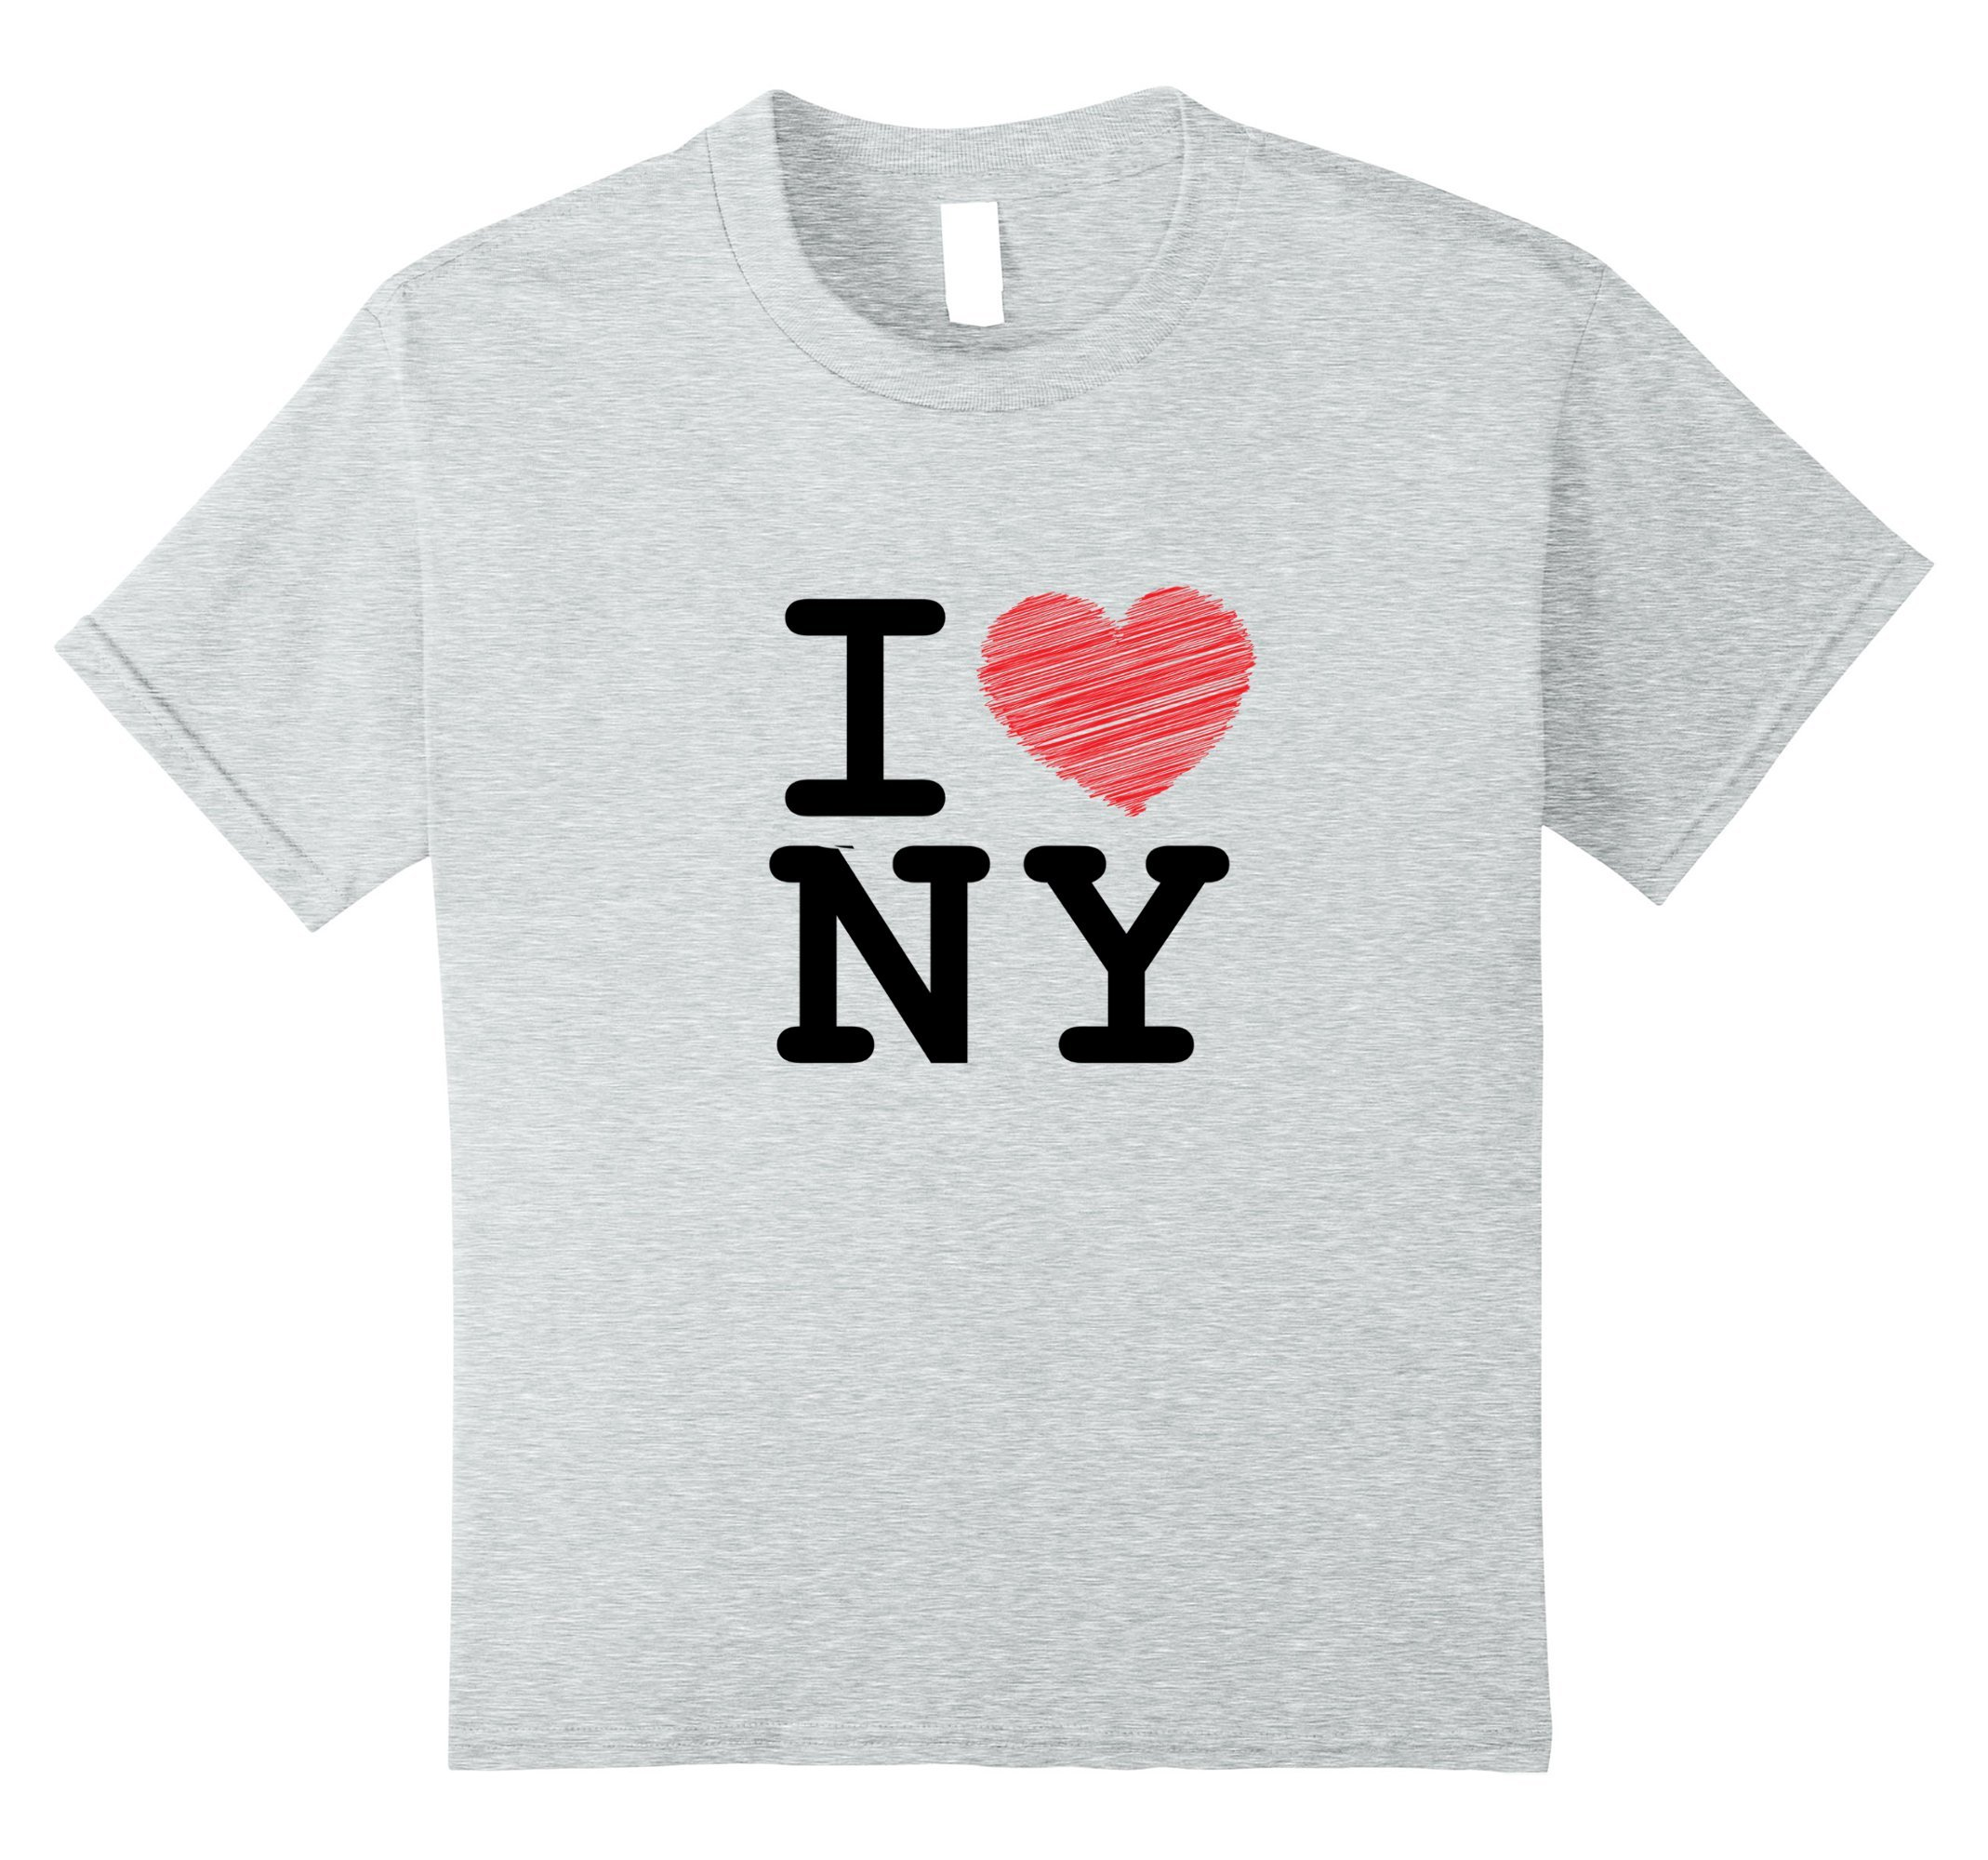 Kids I love Newyork, T-shirt, Sleeveless, NY, Heart 12 Heather Grey